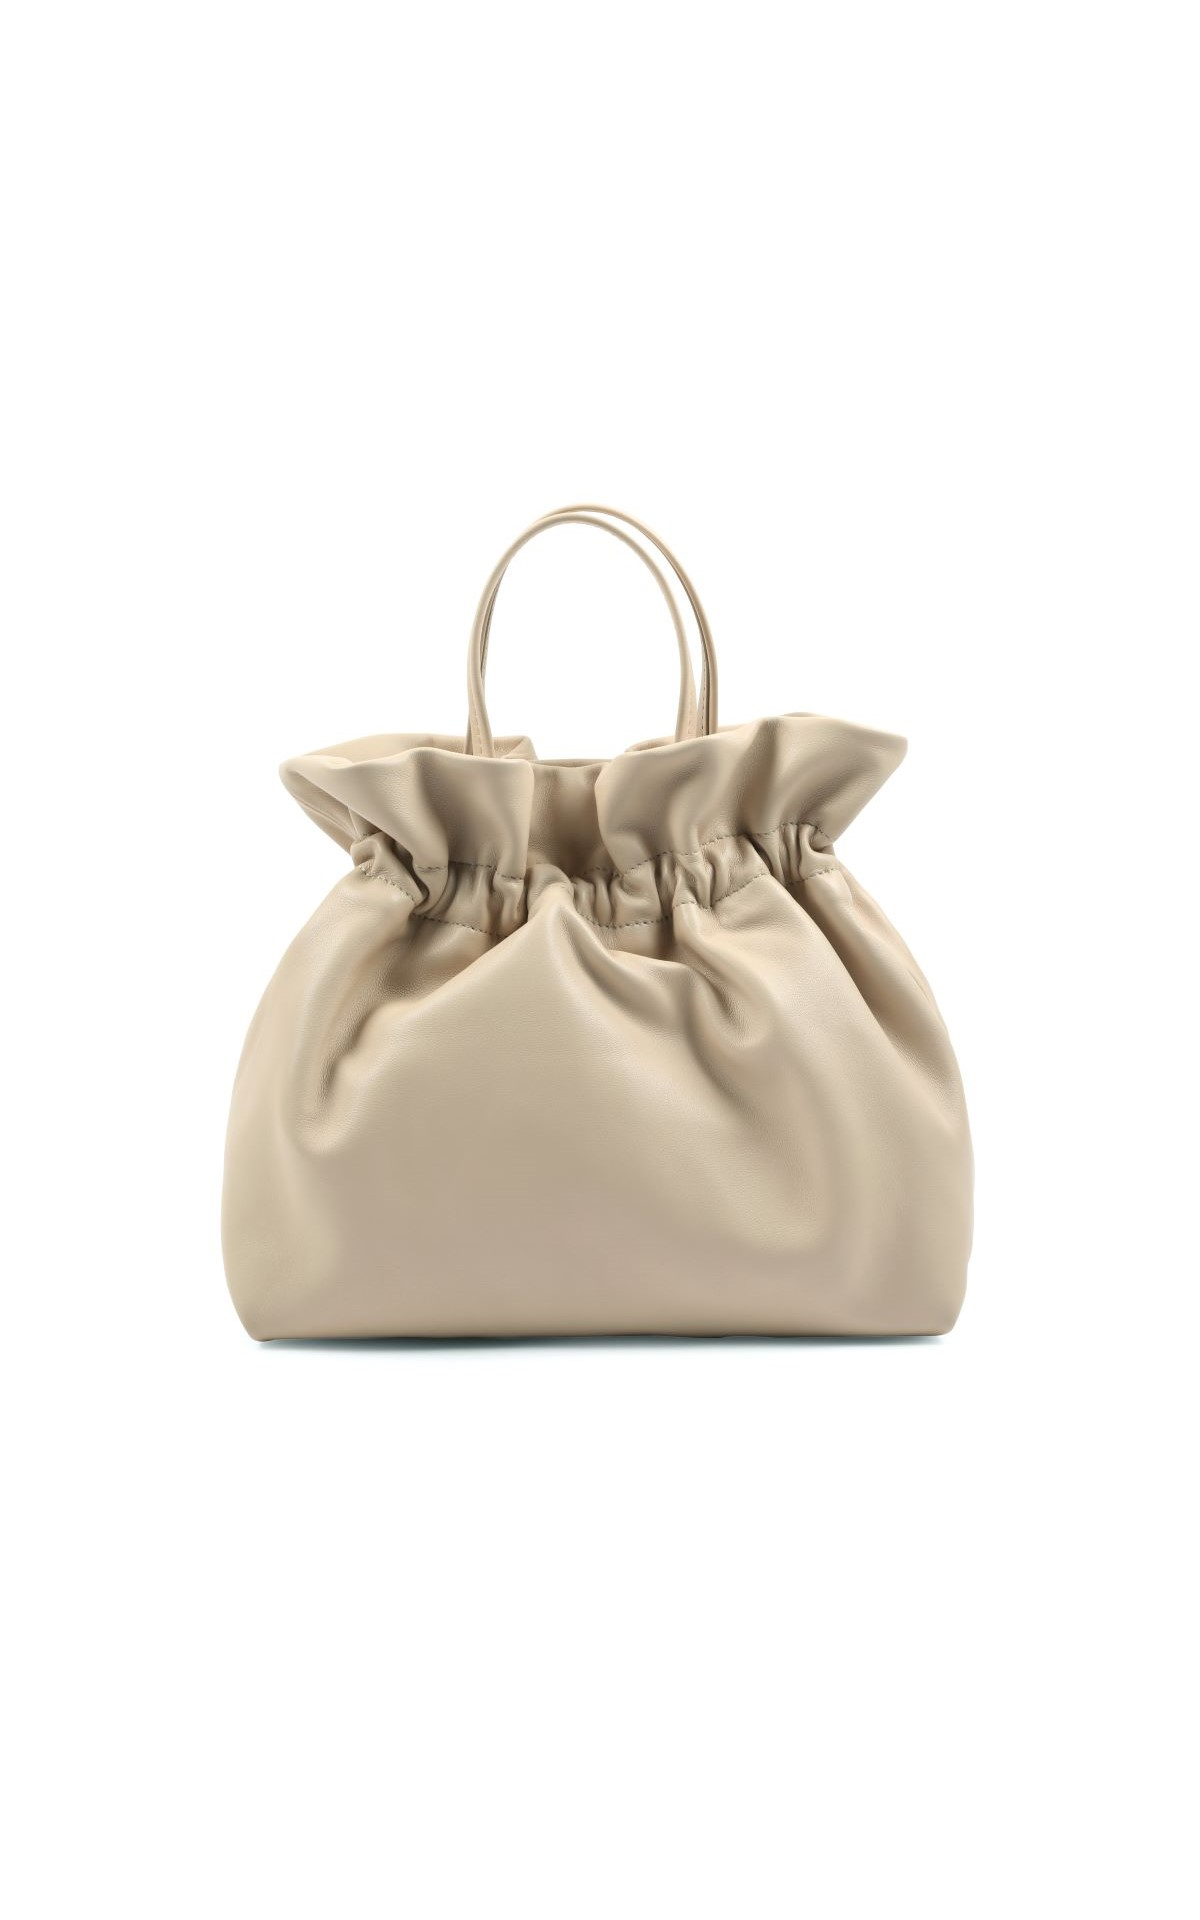 La Vallée Village Repetto Beige Lin Studio big bag